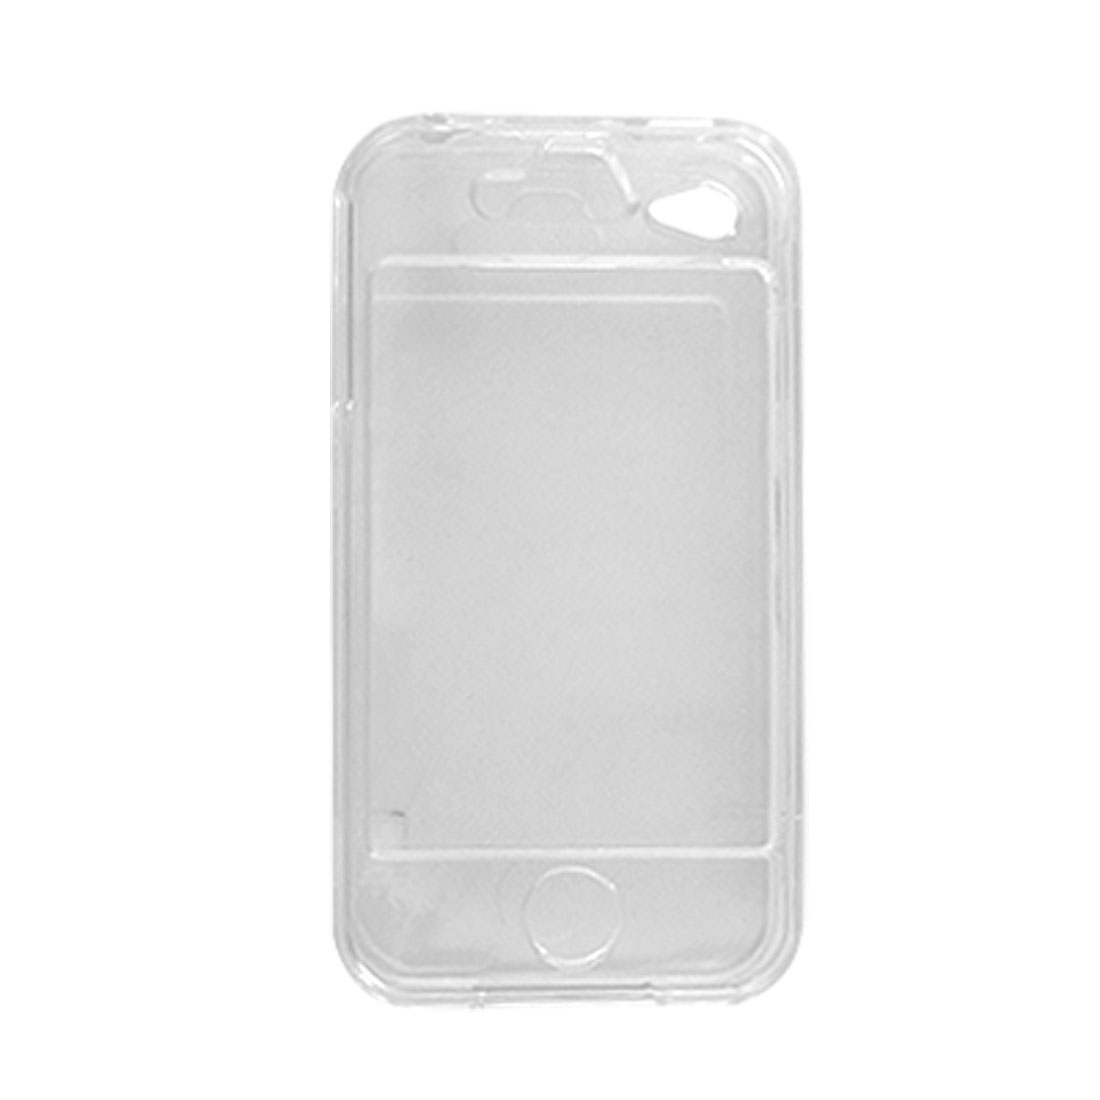 Clear Hard Plastic Crystal Case Protector for iPhone 4G 4